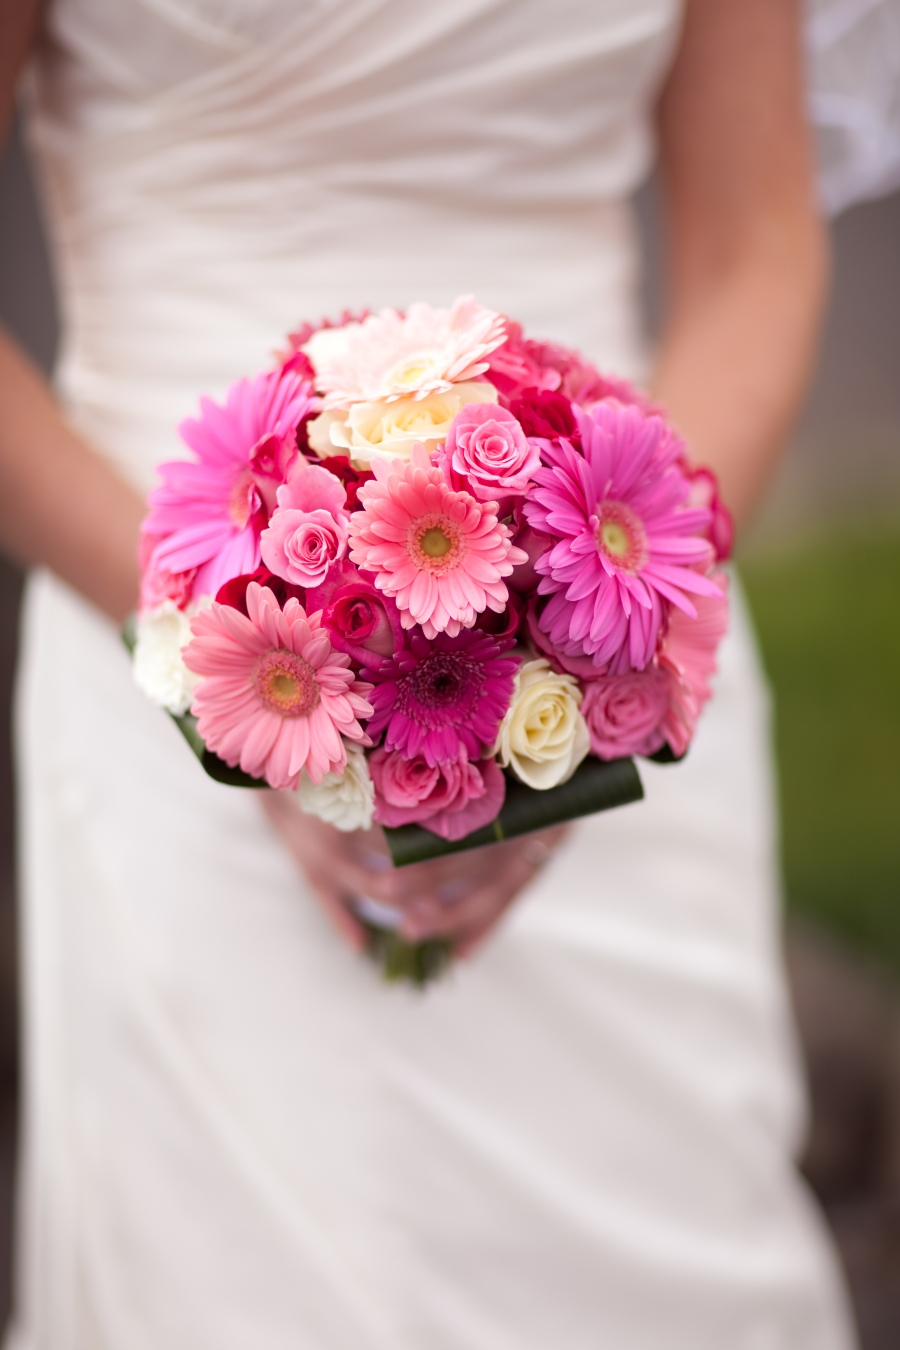 35 beach wedding bouquets destination wedding details beach wedding bouquet pink gerbeera daisies and roses junglespirit Choice Image